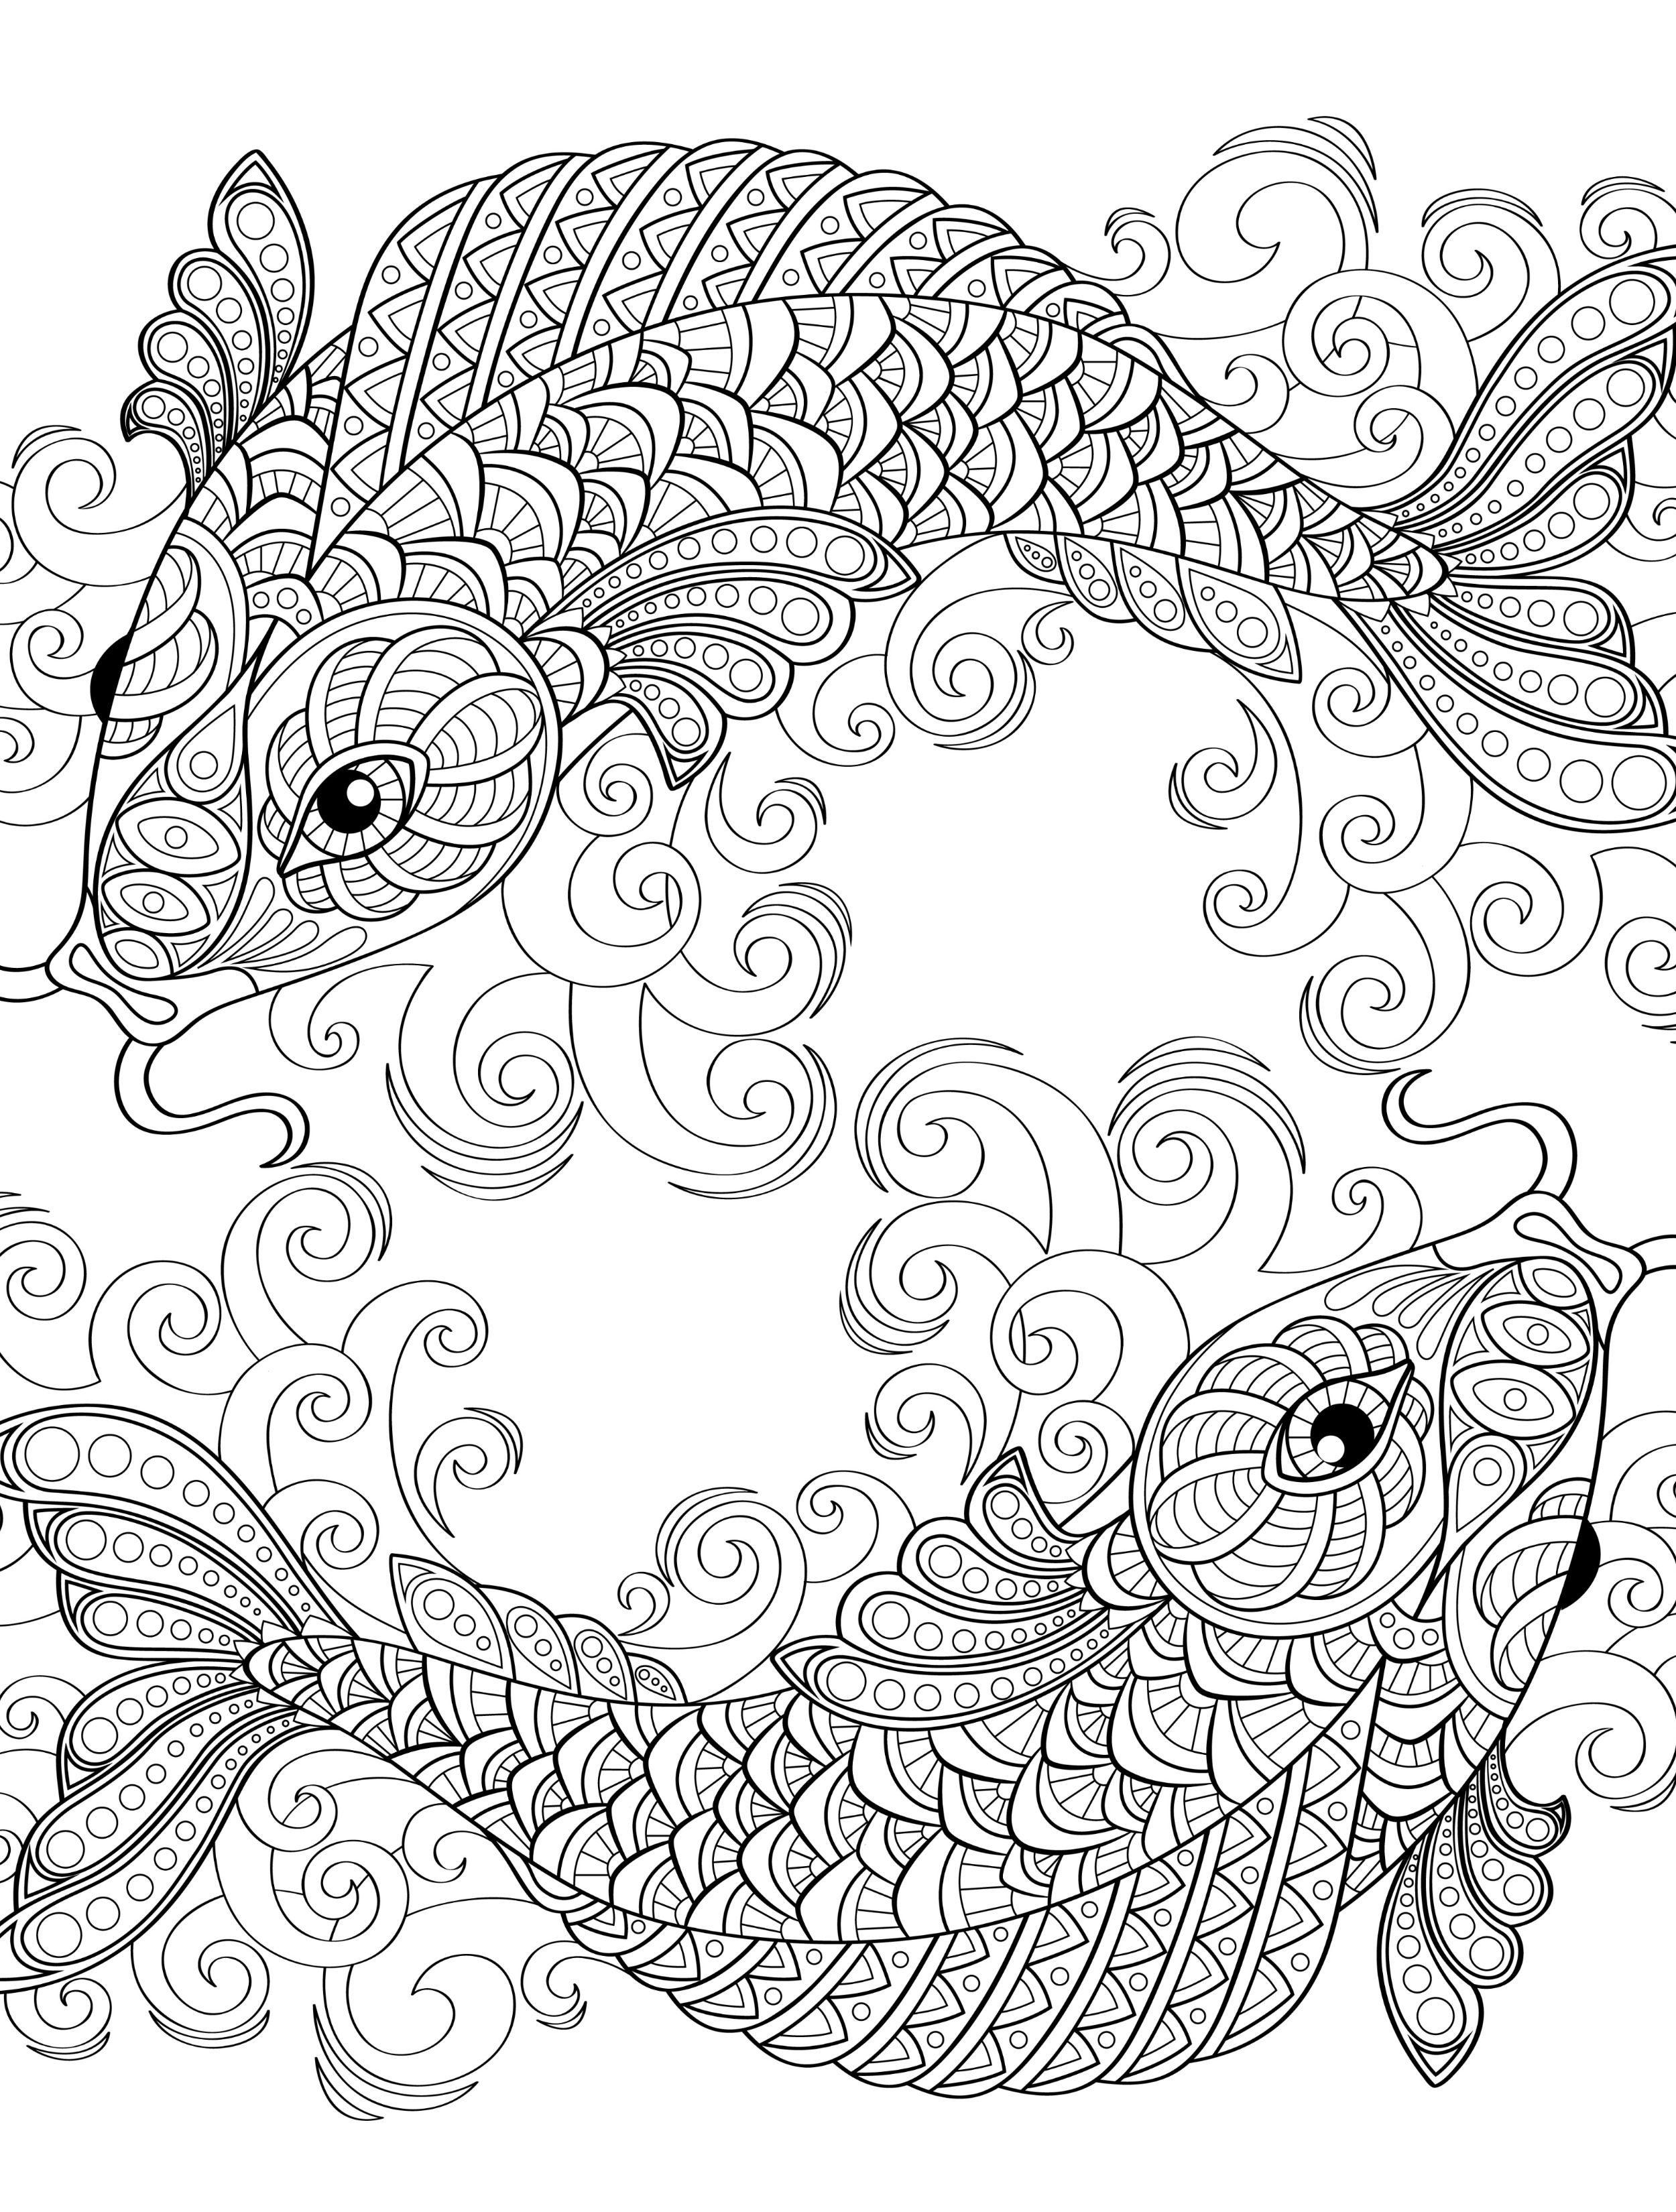 adult coloring pages free 25 bästa idéerna om adult coloring pages på pinterest adult pages free coloring